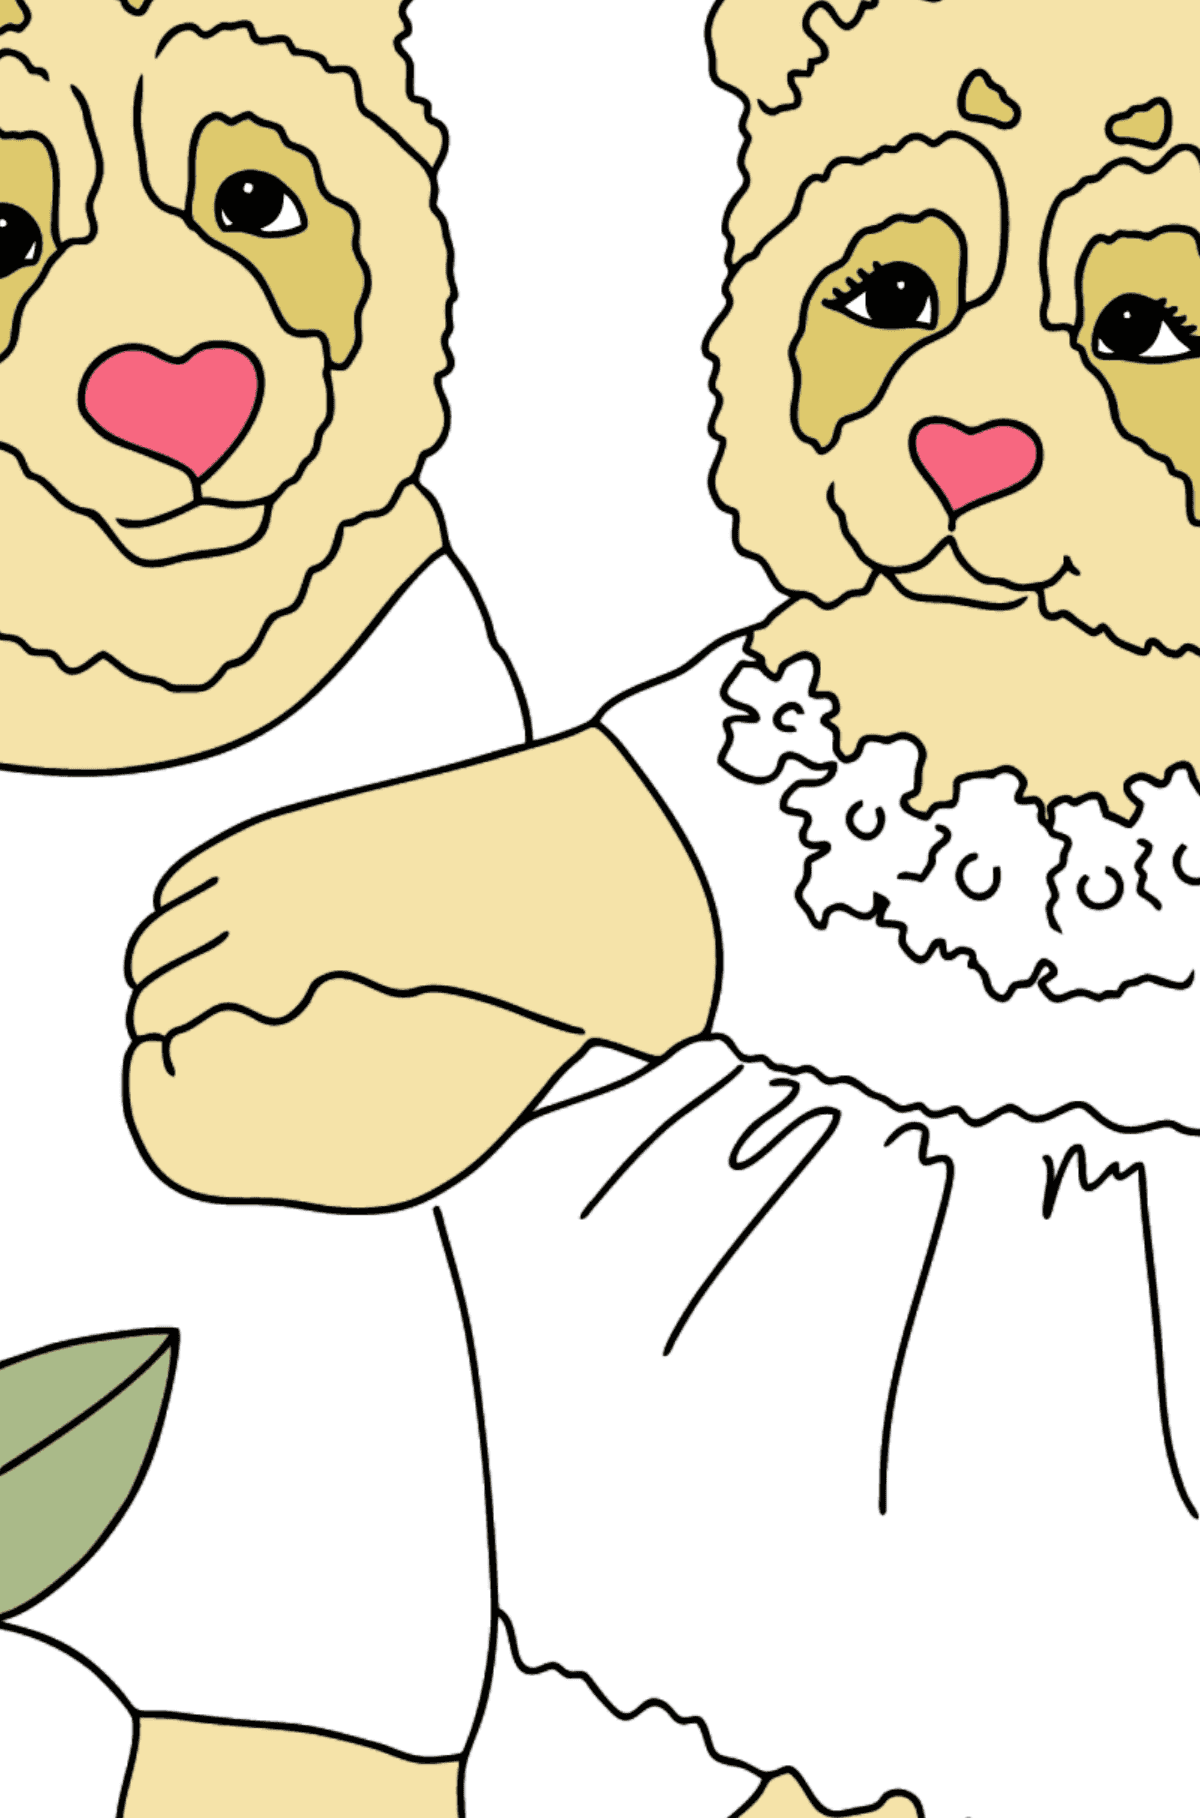 Coloring Page - Pandas Taking a Walk - Coloring by Numbers for Kids